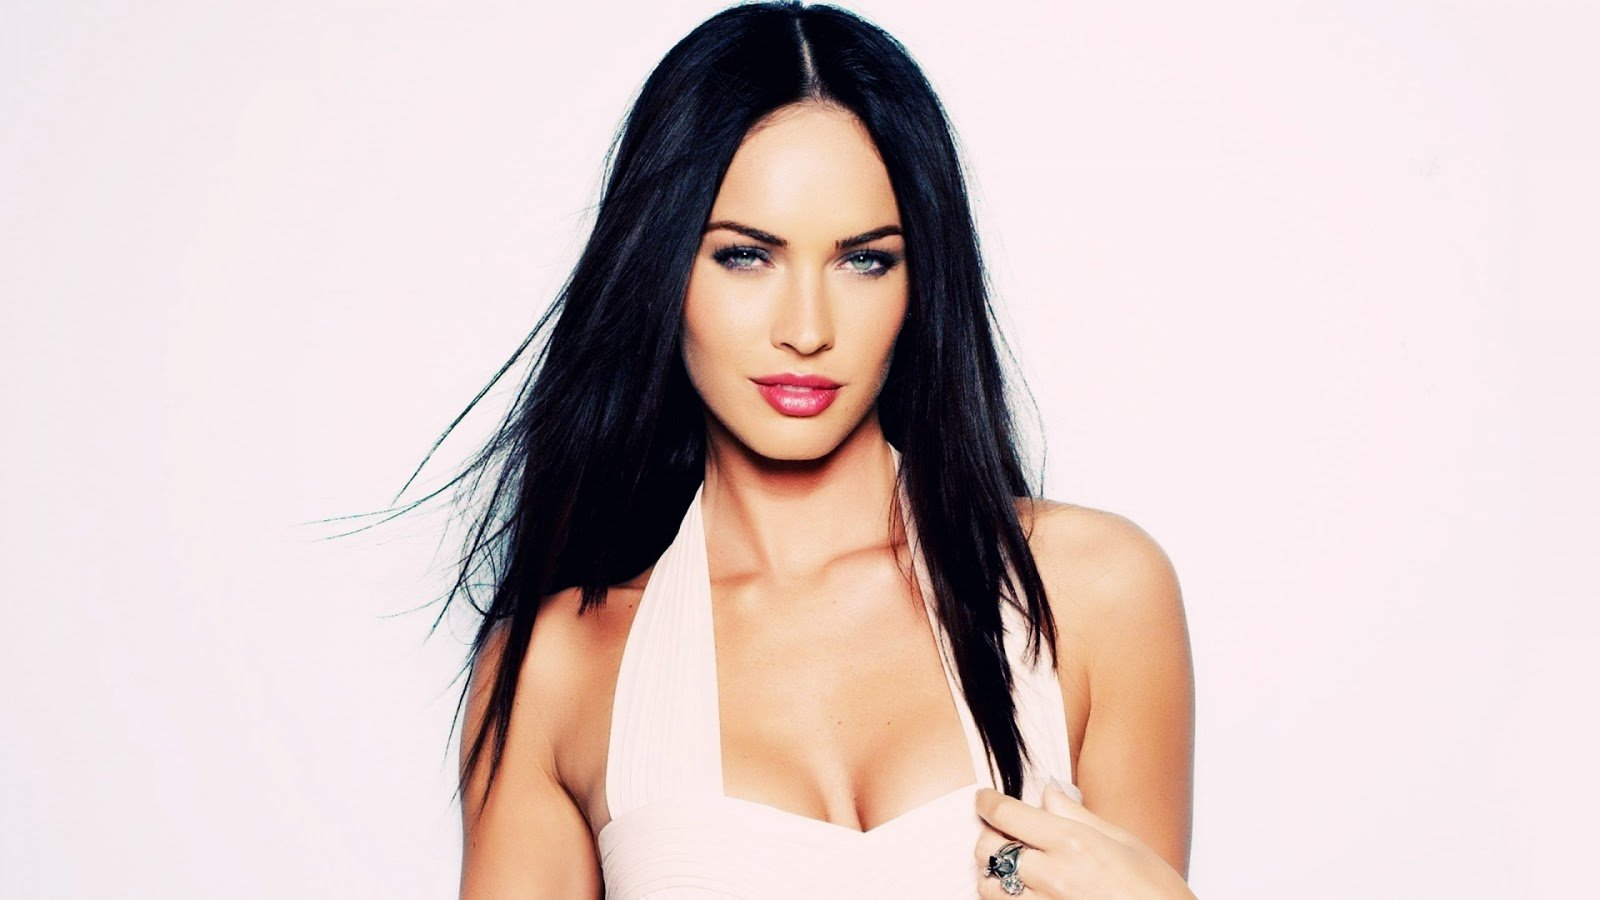 megan fox wallpaper megan fox9jpg 1600x900